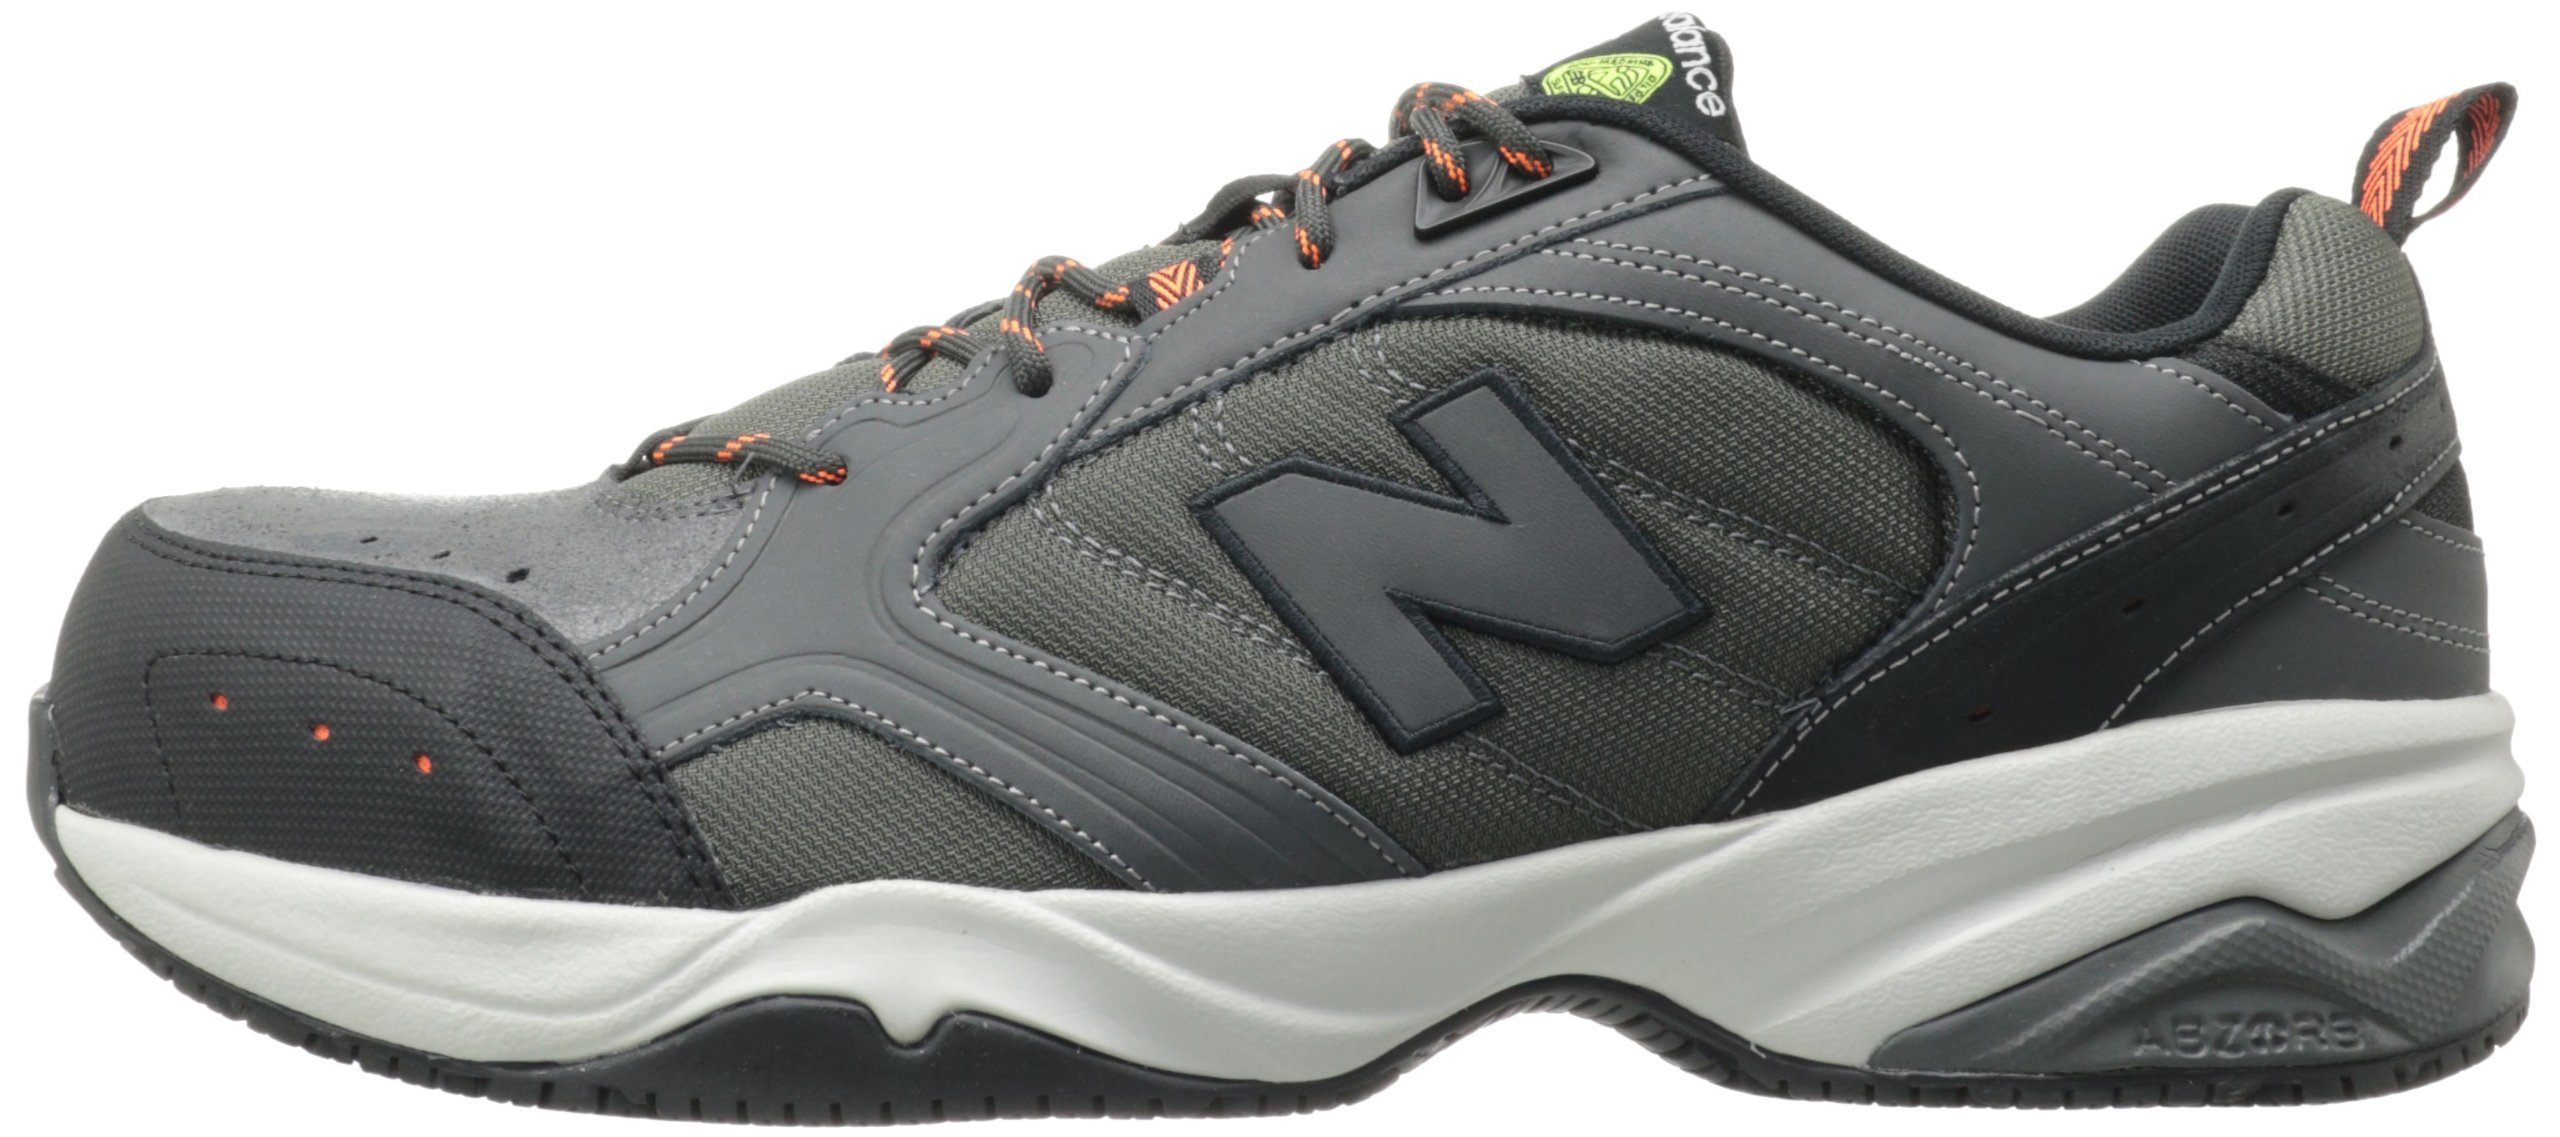 New Balance Men's MID627 Steel-Toe Work Shoe,Grey,17 D US by New Balance (Image #5)